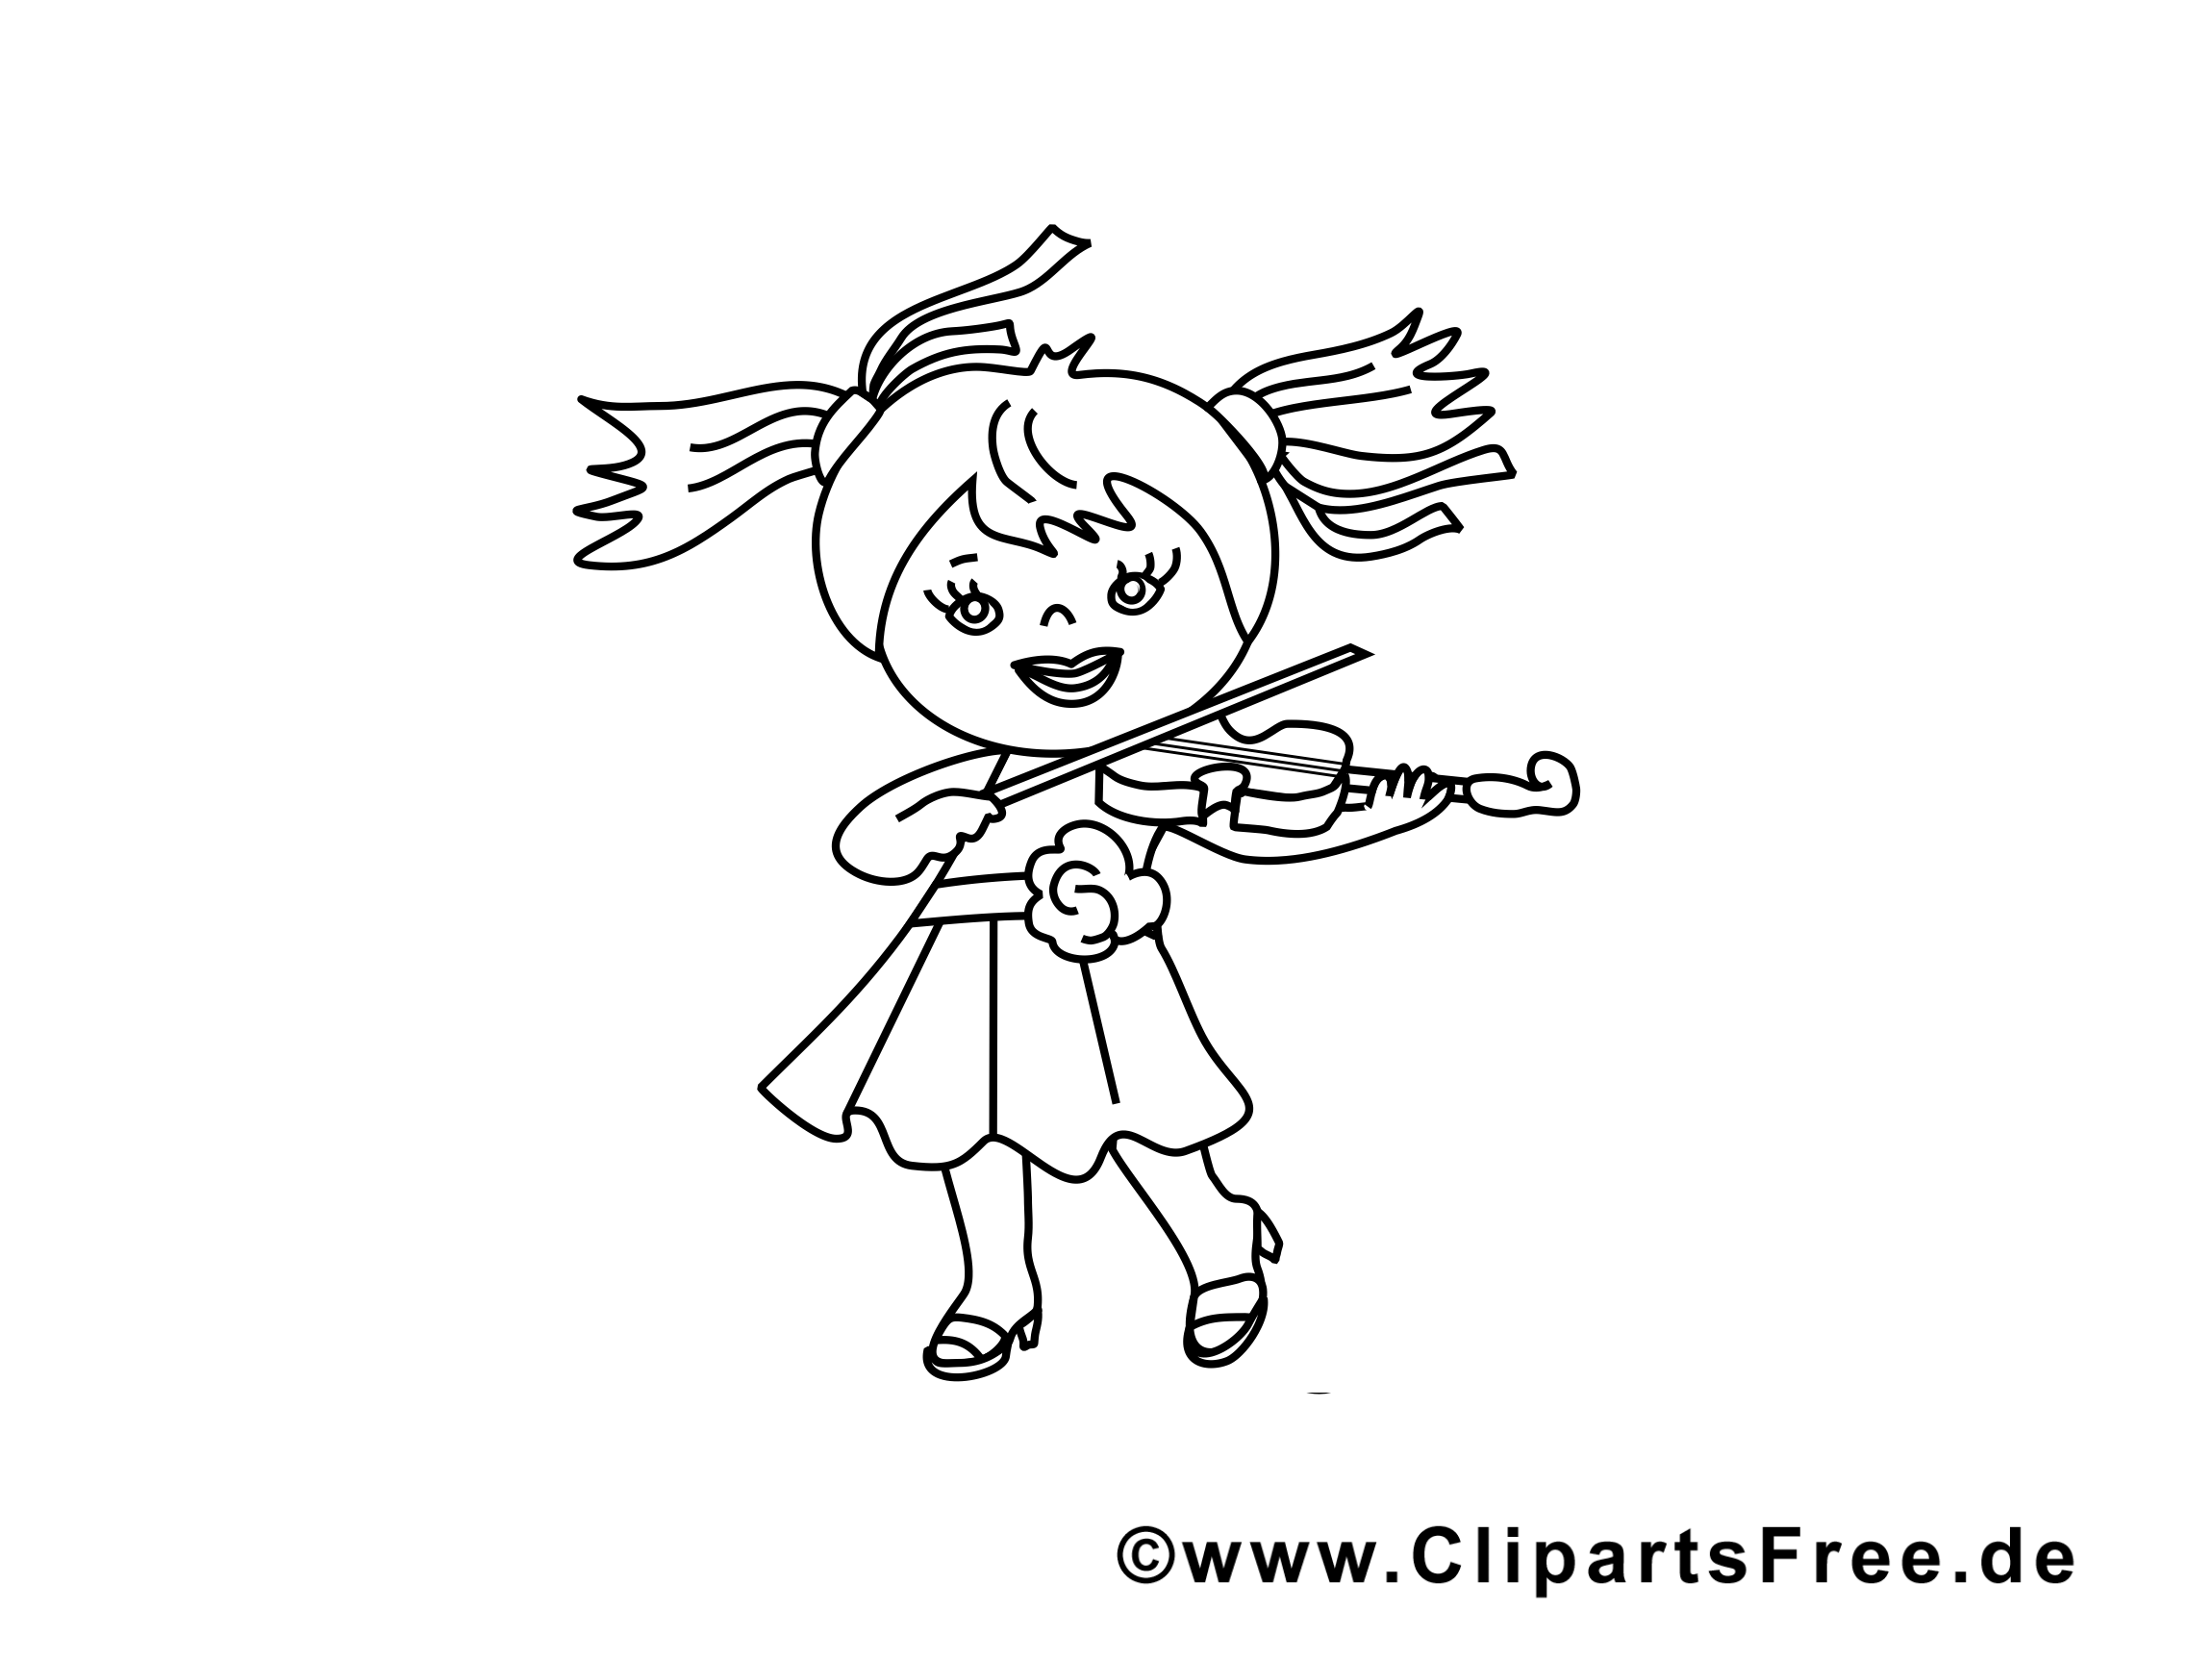 Violon illustration – Coloriage maternelle cliparts